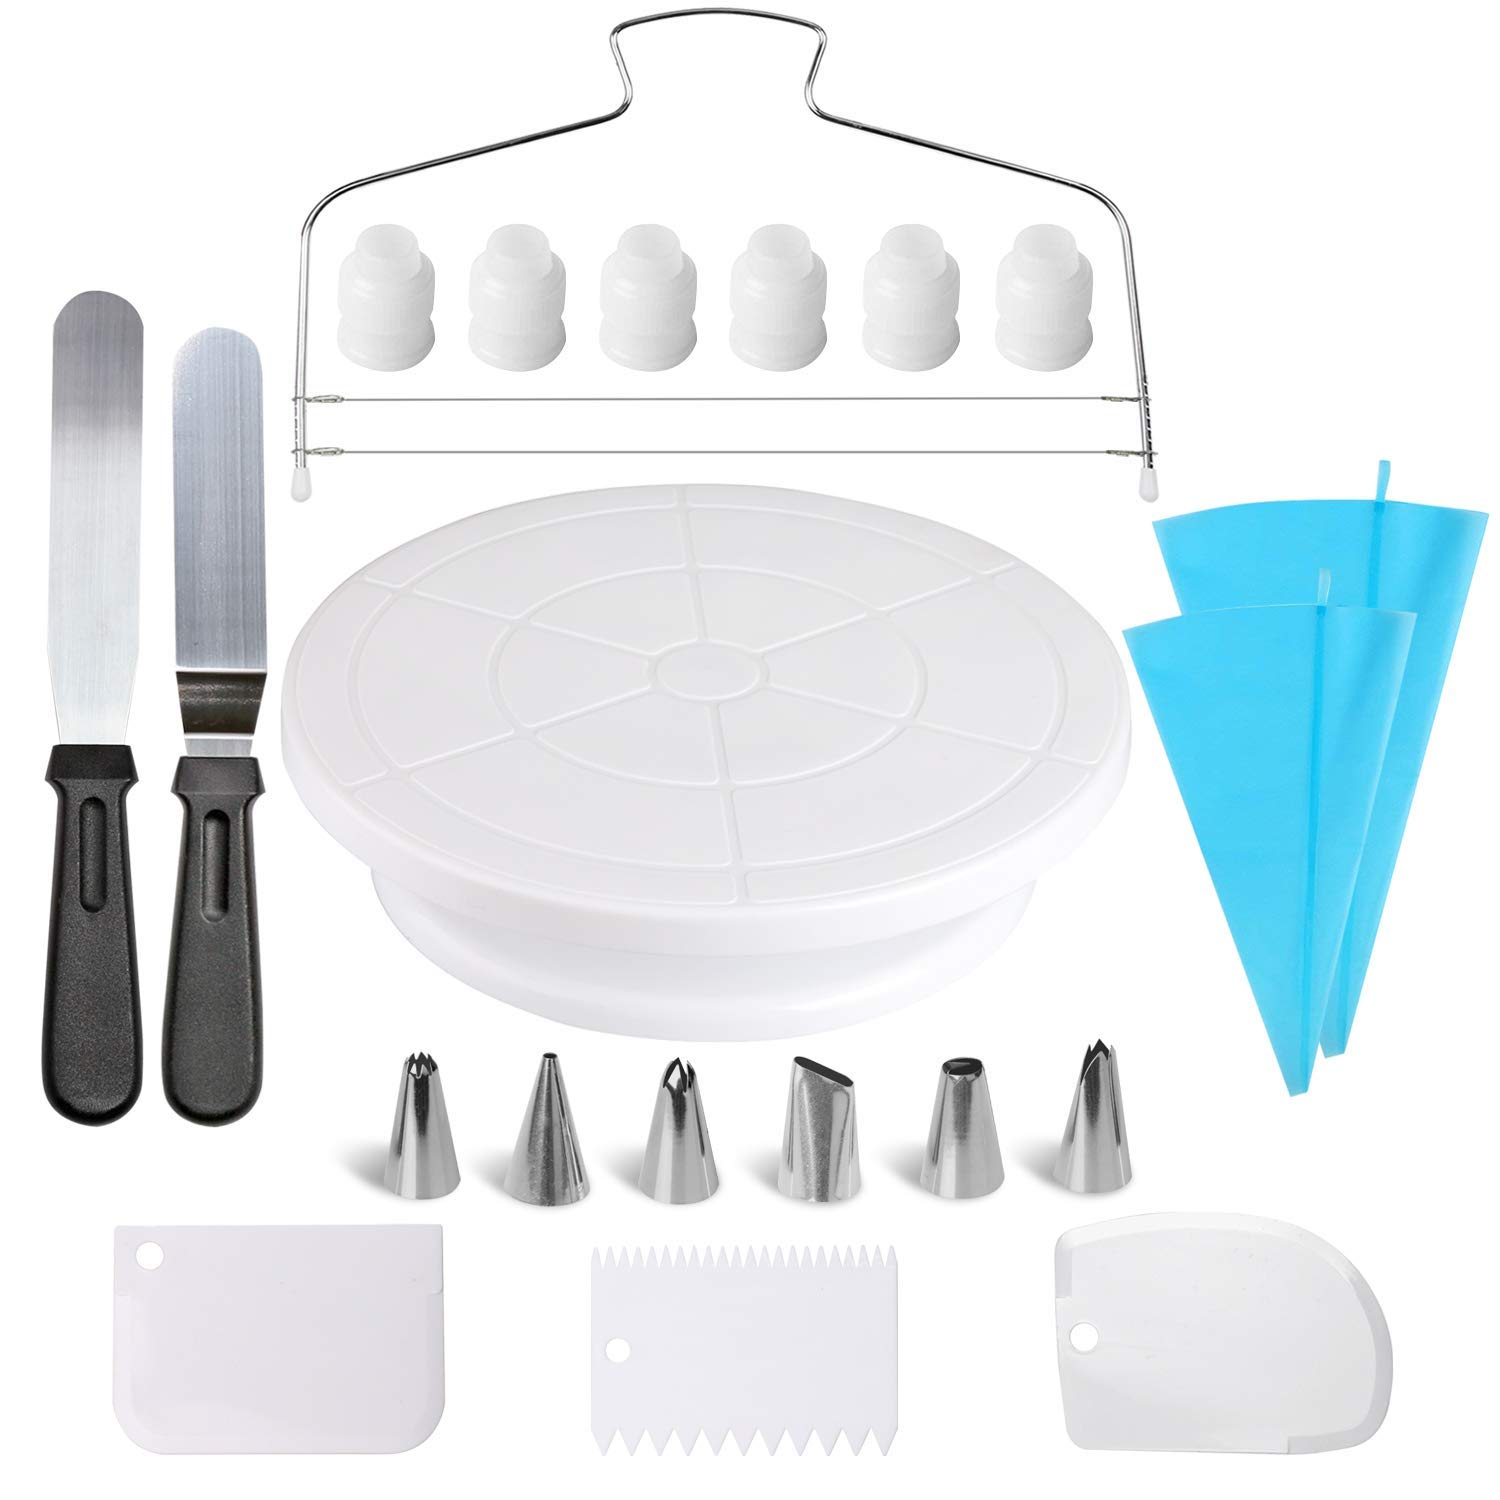 Cake Decorating Supplies,21pcs Cake Decorating Kit with Cake Rotating Turntable, Icing Spatulas,Cake Scrappers, Cake Cutter, Piping Nozzles,Pastry Bag,Piping Tip Couplers